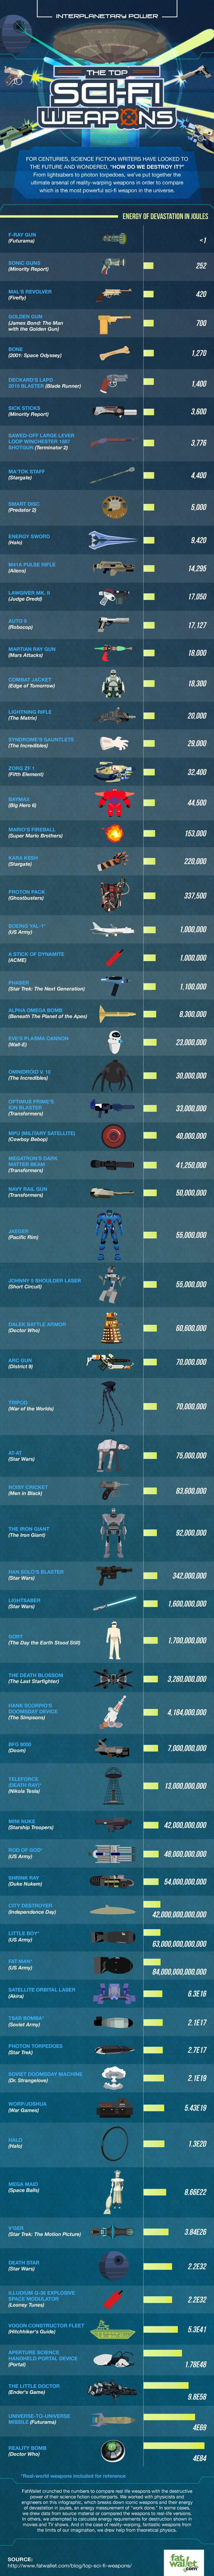 Infographic Lists The Most Destructive Weapons In Sci-Fi Universe-1